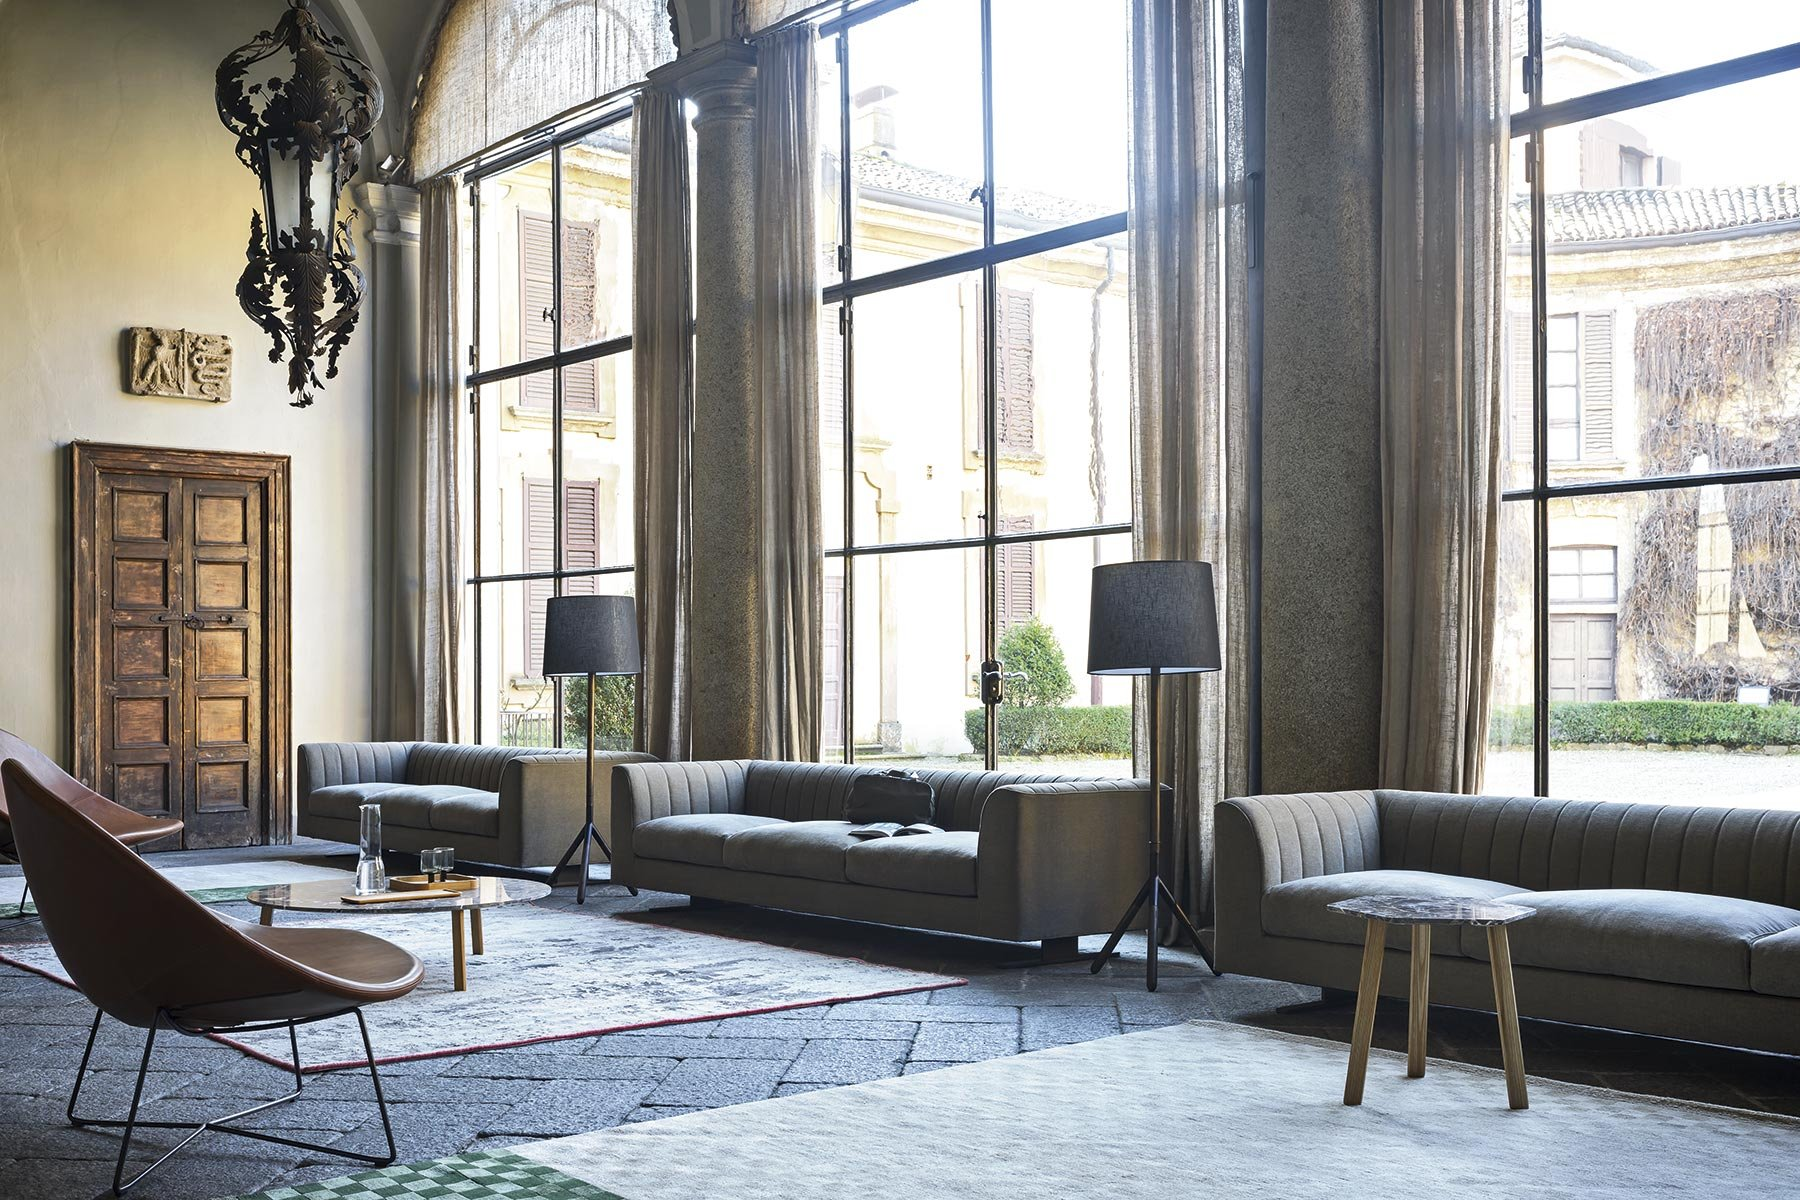 Quilt Sofa from Tacchini